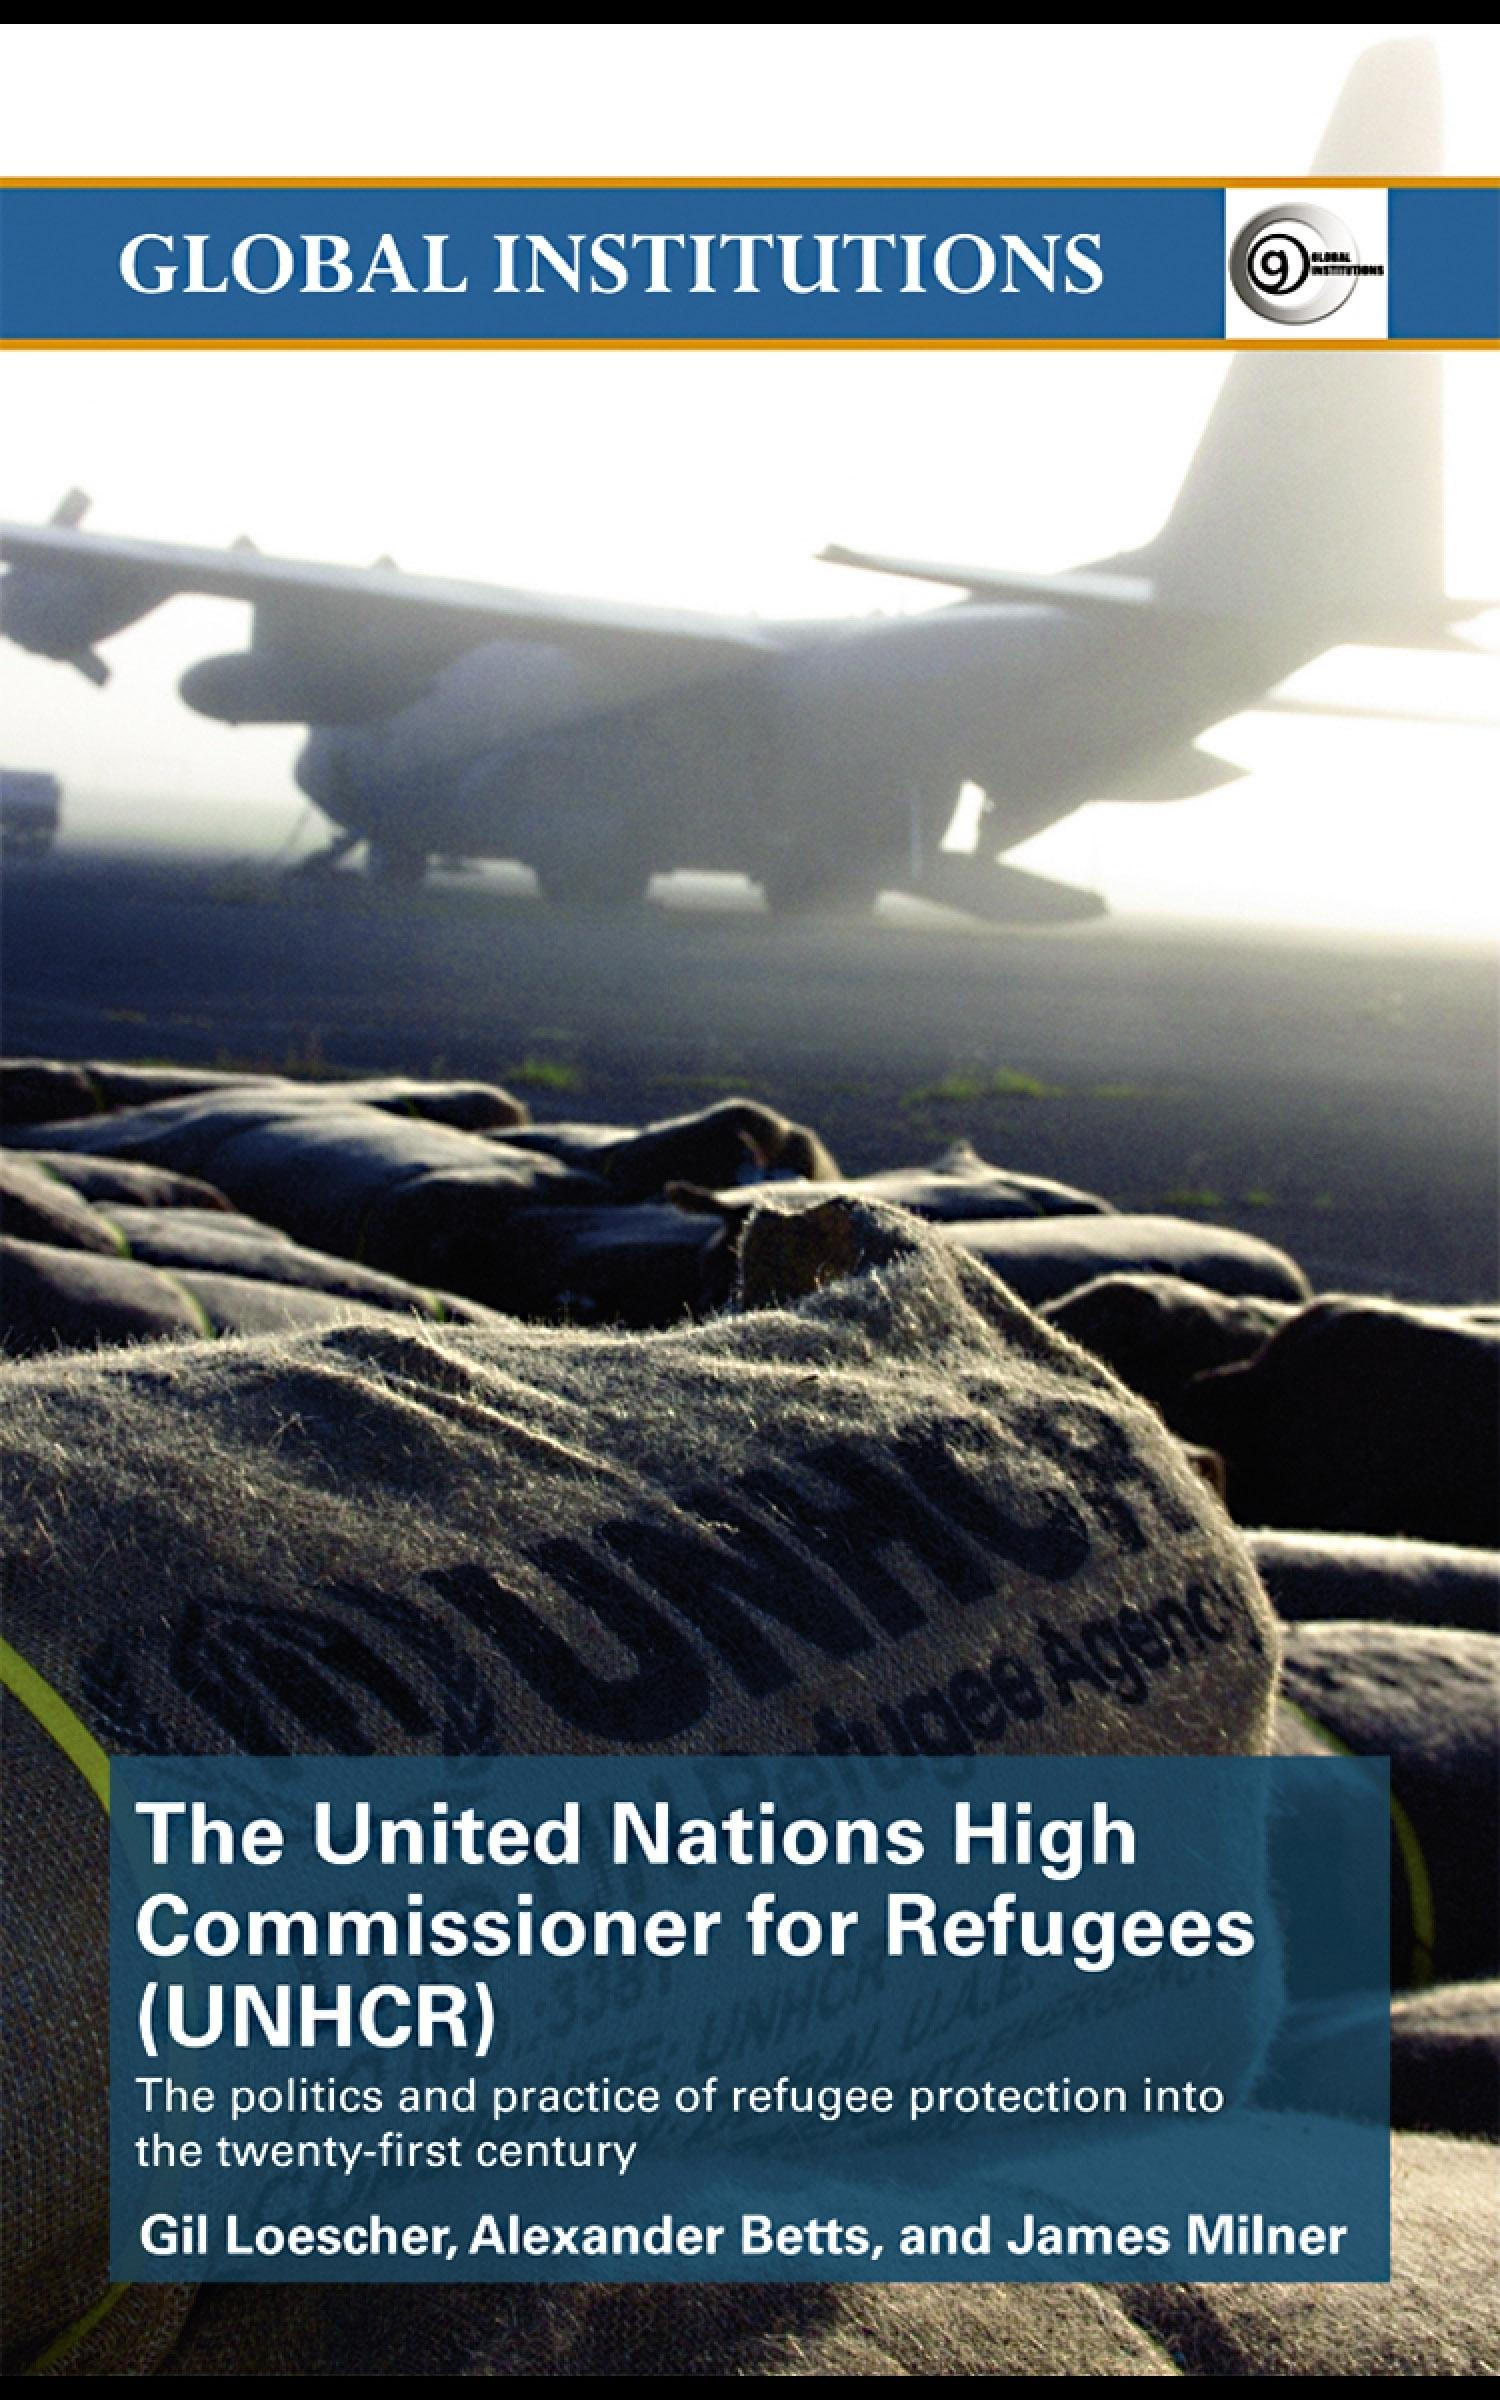 The United Nations High Commissioner for Refugees (UNHCR): The politics and practice of refugee protection into the 21st century